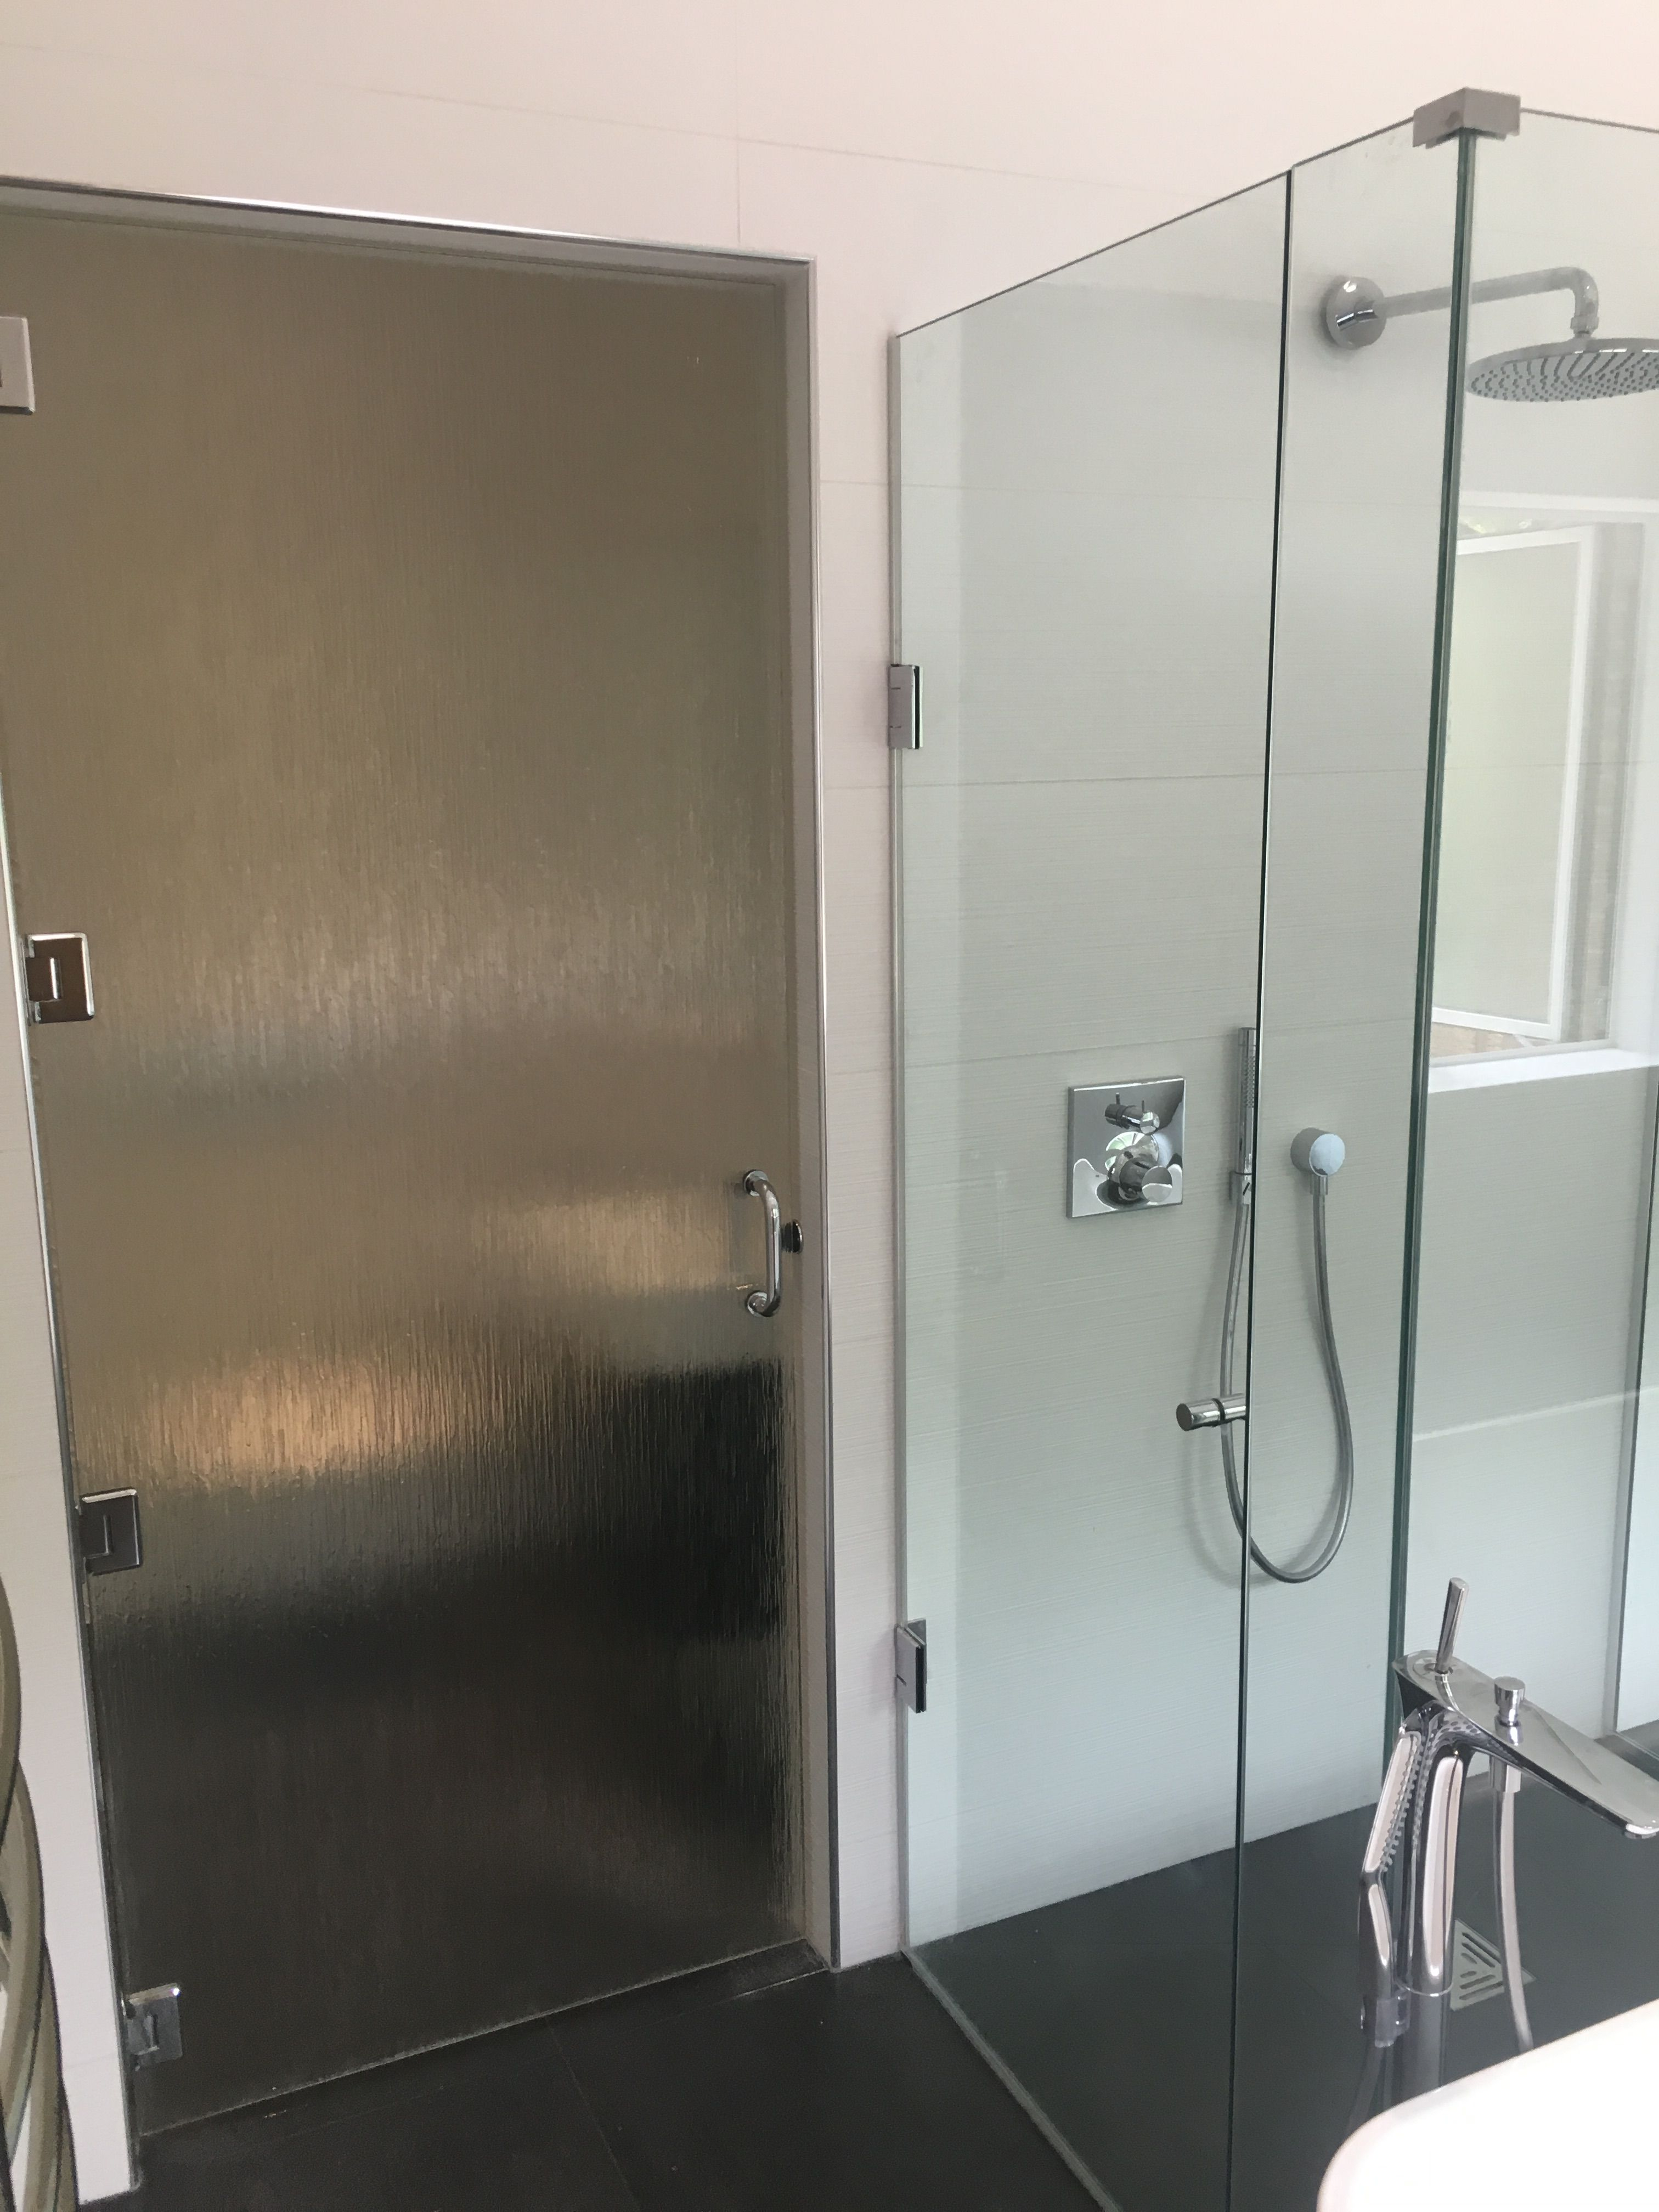 Frameless 3 sided shower enclosure and reeded glass bathroom door ...